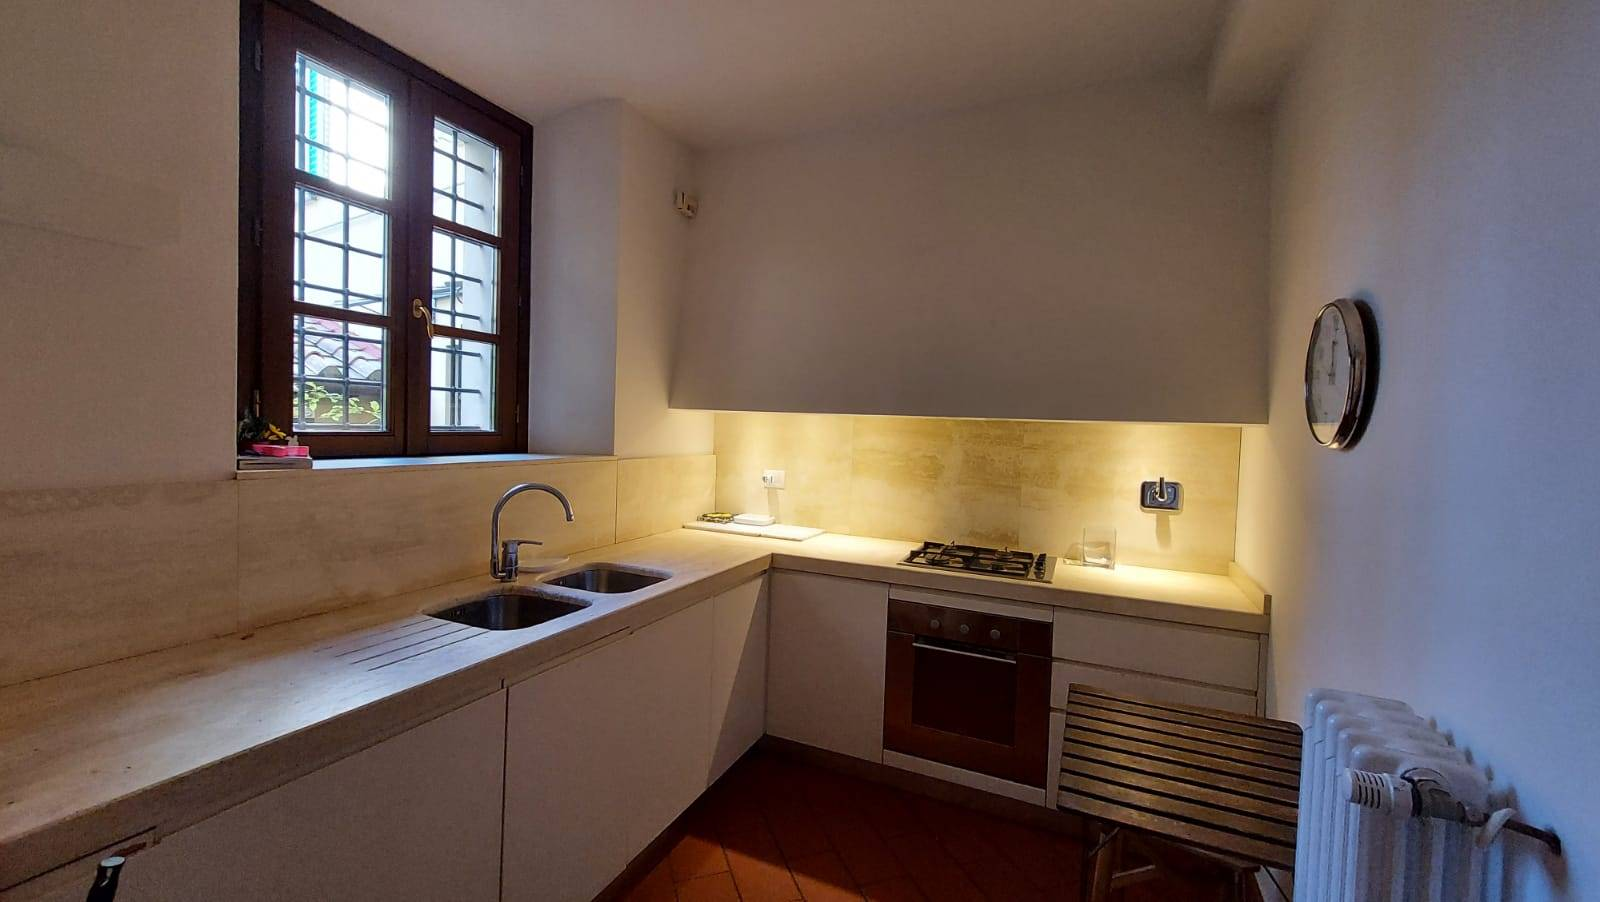 MARIGNOLLE, FIRENZE, Apartment for sale of 185 Sq. mt., Restored, Heating Individual heating system, Energetic class: G, Epi: 230 kwh/m2 year, placed